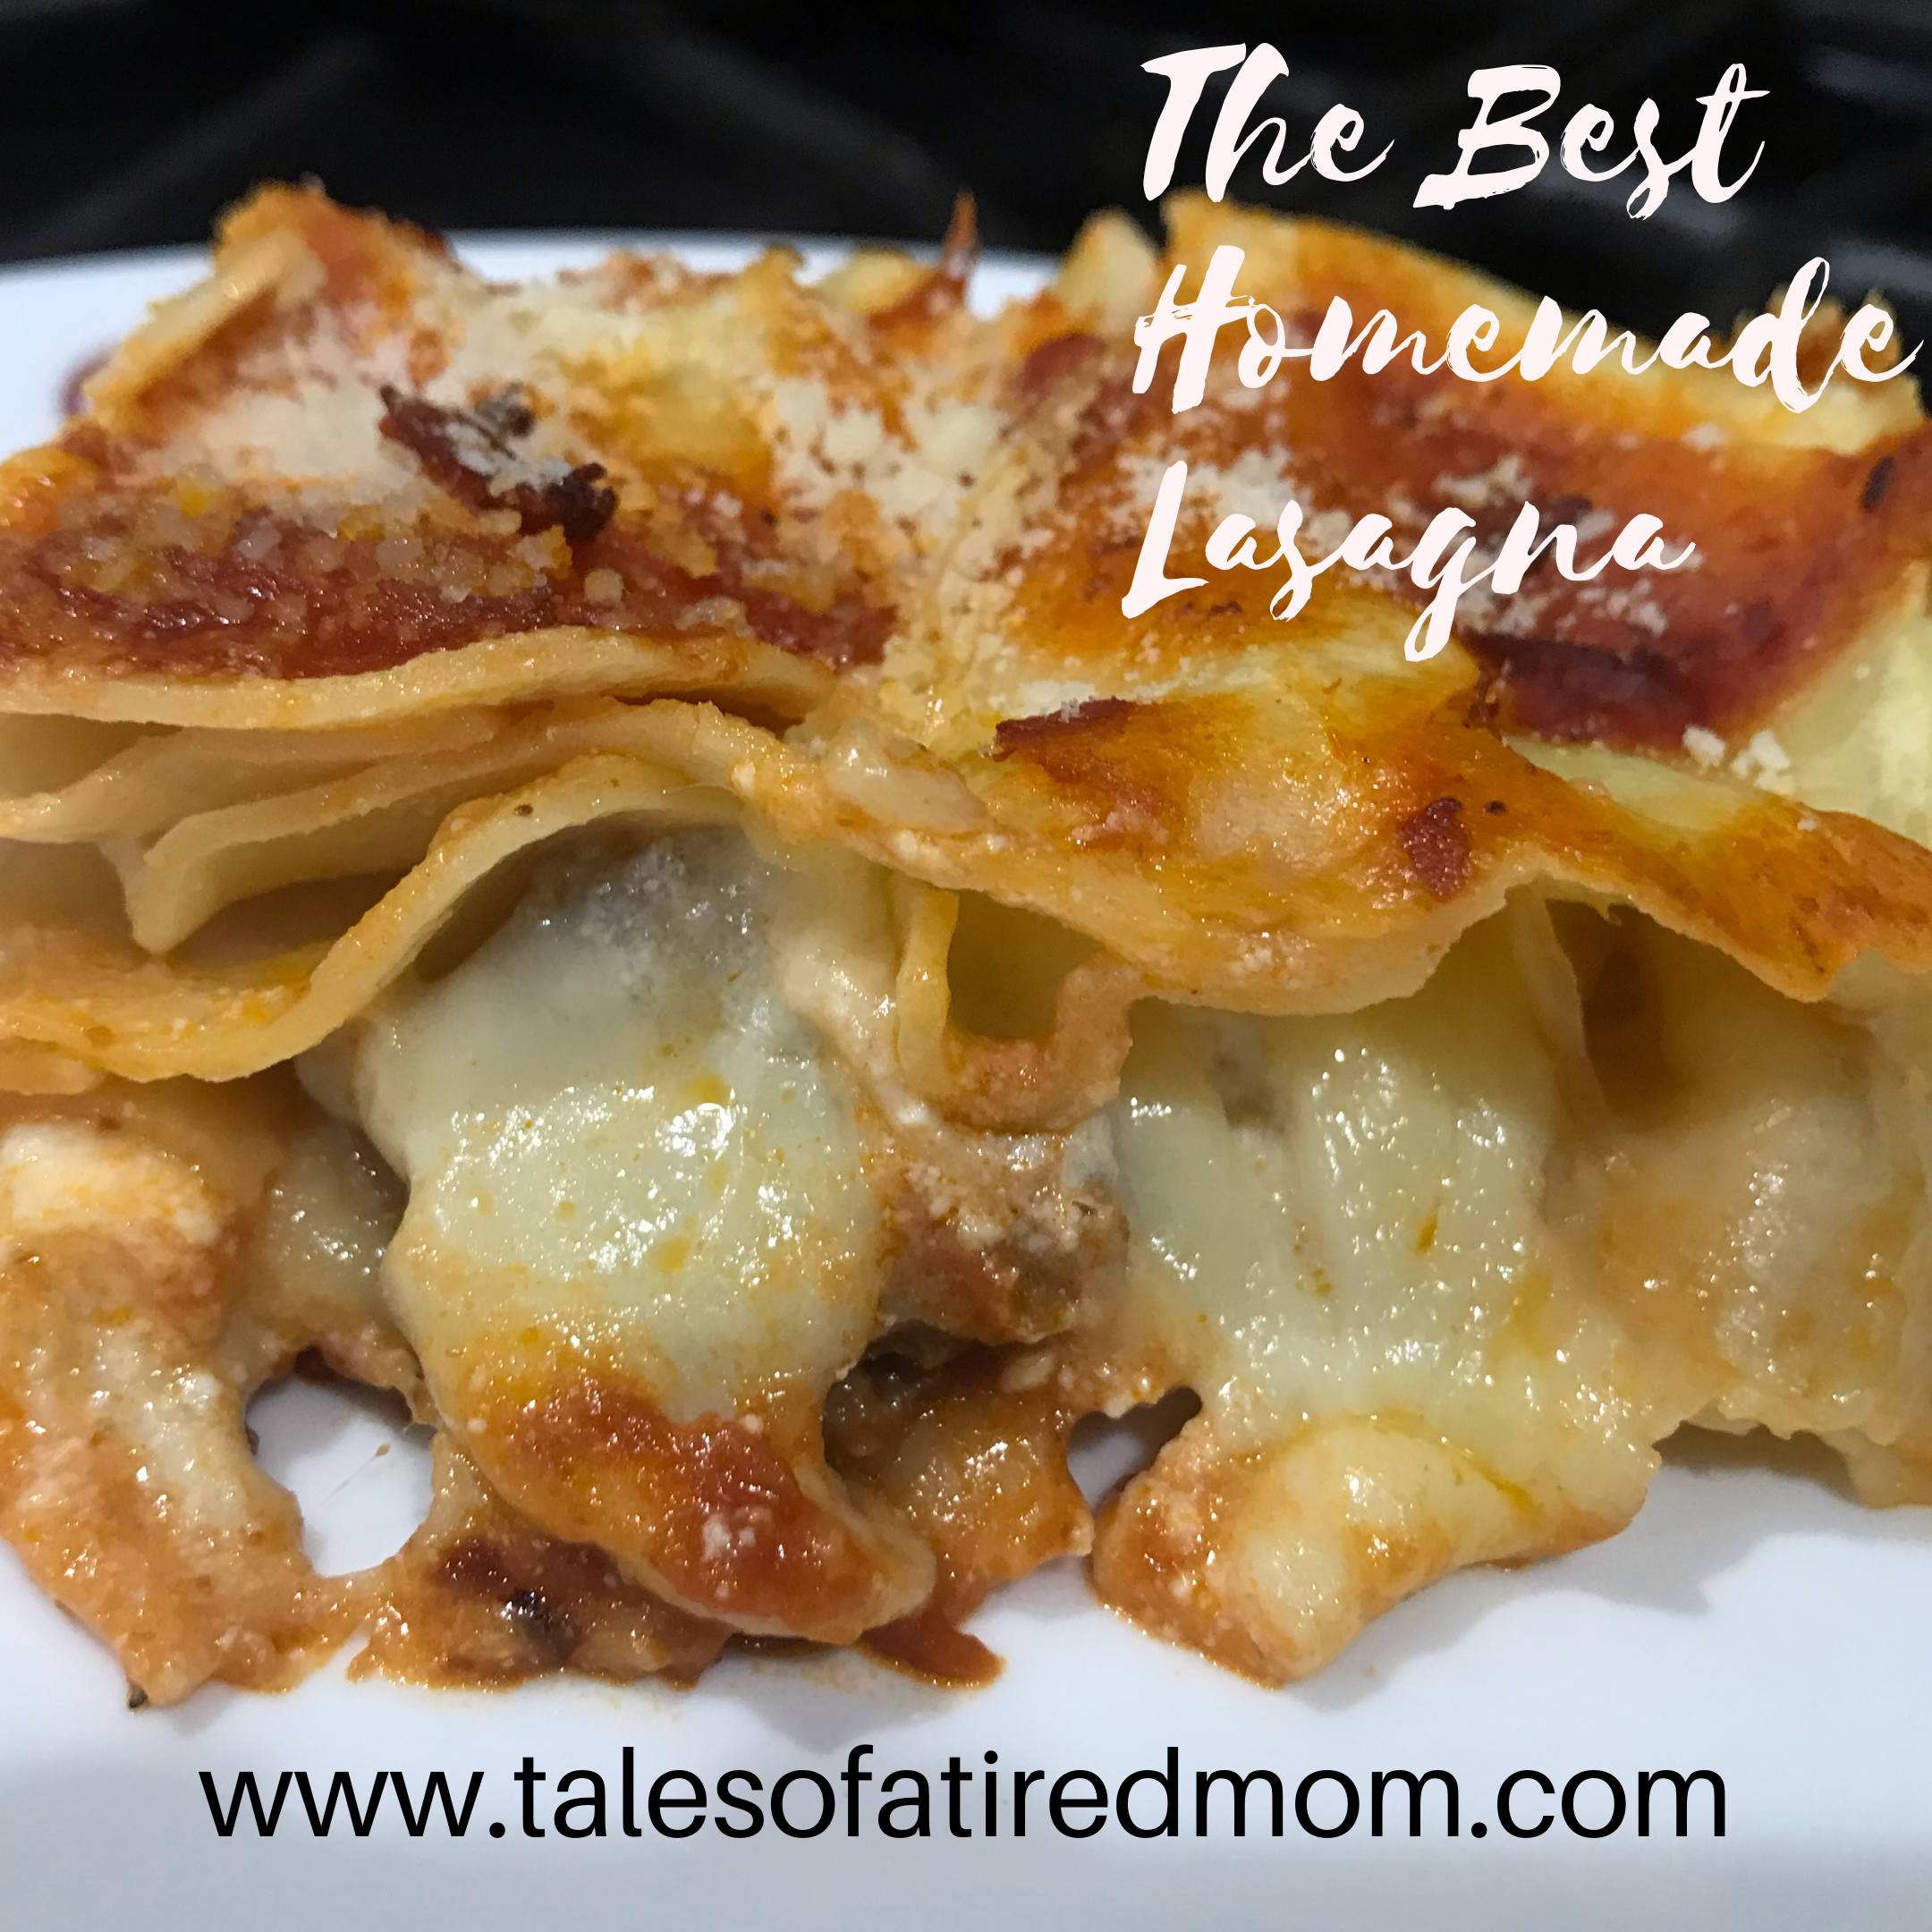 Recipes. Breakfast for a crowd. Easy and fun party appetizers. Desserts, lunch, and dinner ideas! Healthy options. Enjoy all of my recipes.